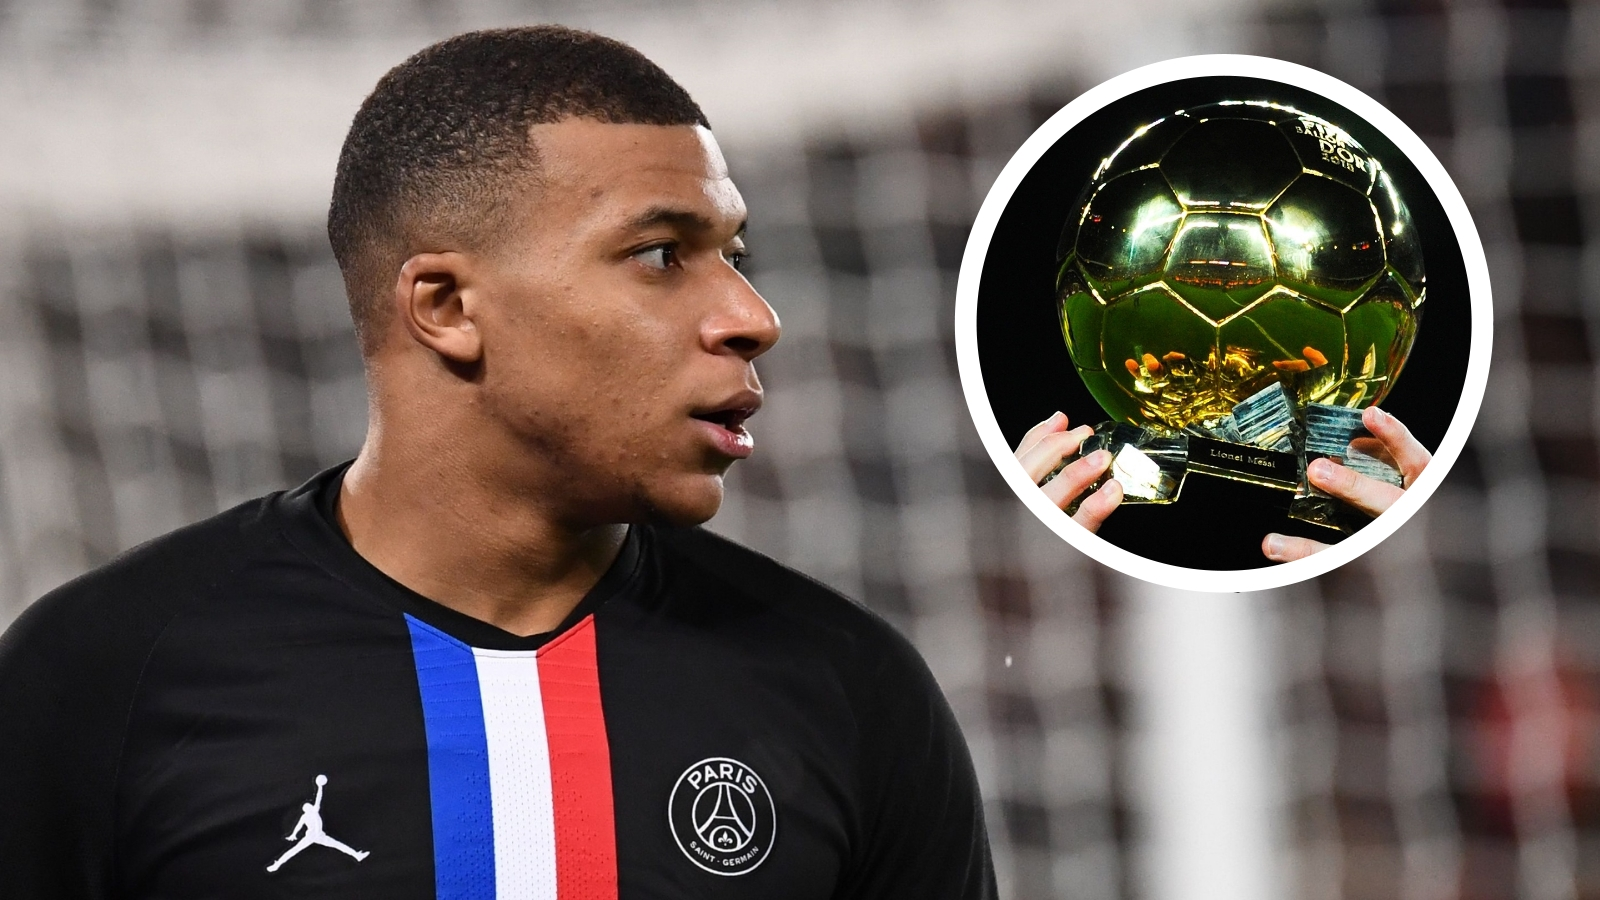 'Mbappe will dominate Ballon d'Or after Messi & Ronaldo' - PSG star already in world's top three, says Saha